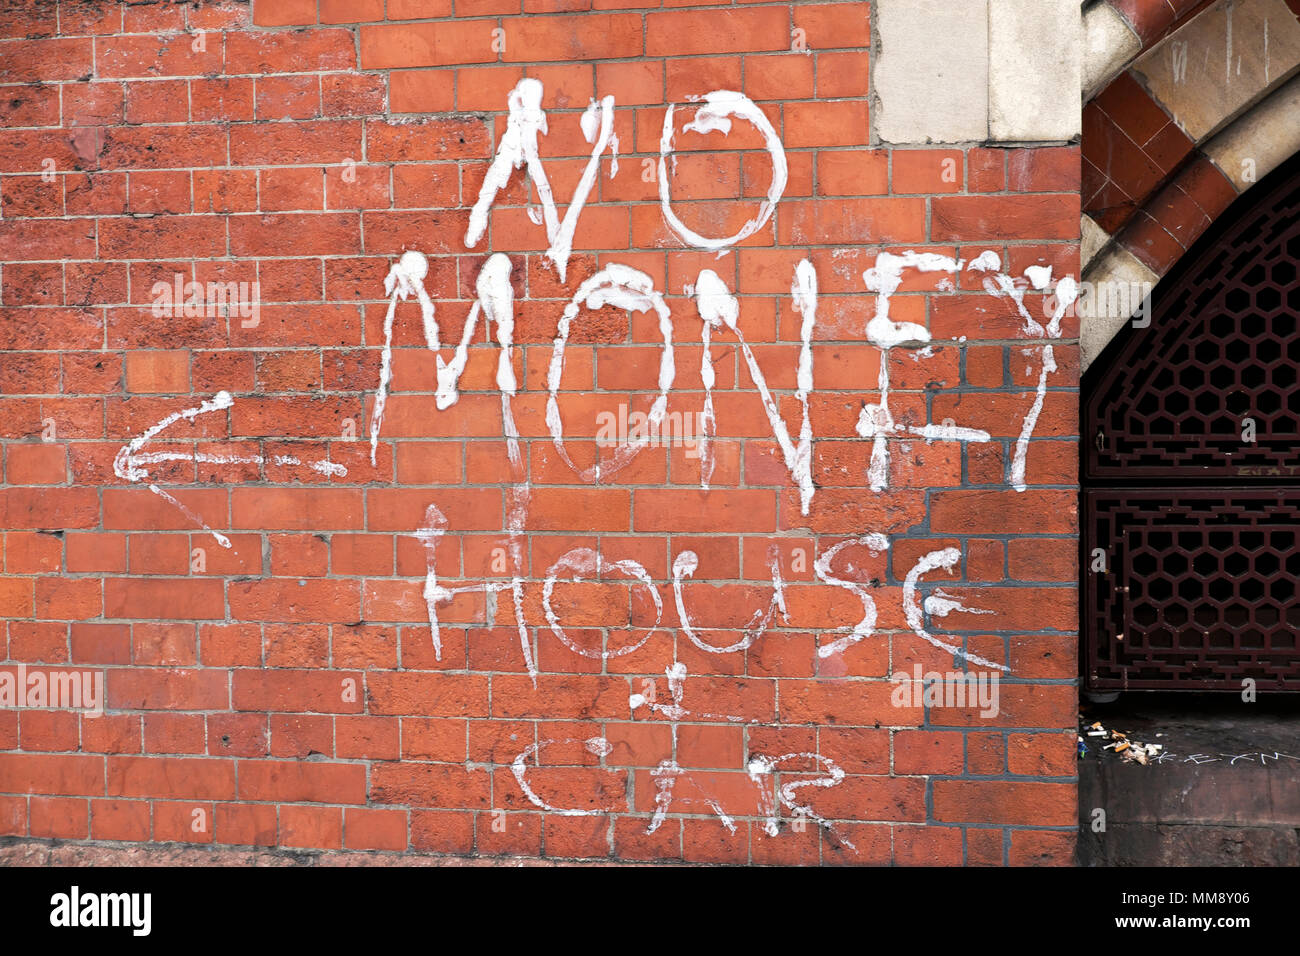 Homelessness graffiti by poor person on wall of St Pancras Station 'No Money, House & Car' in Euston Road, Kings Cross London UK   KATHY DEWITT - Stock Image